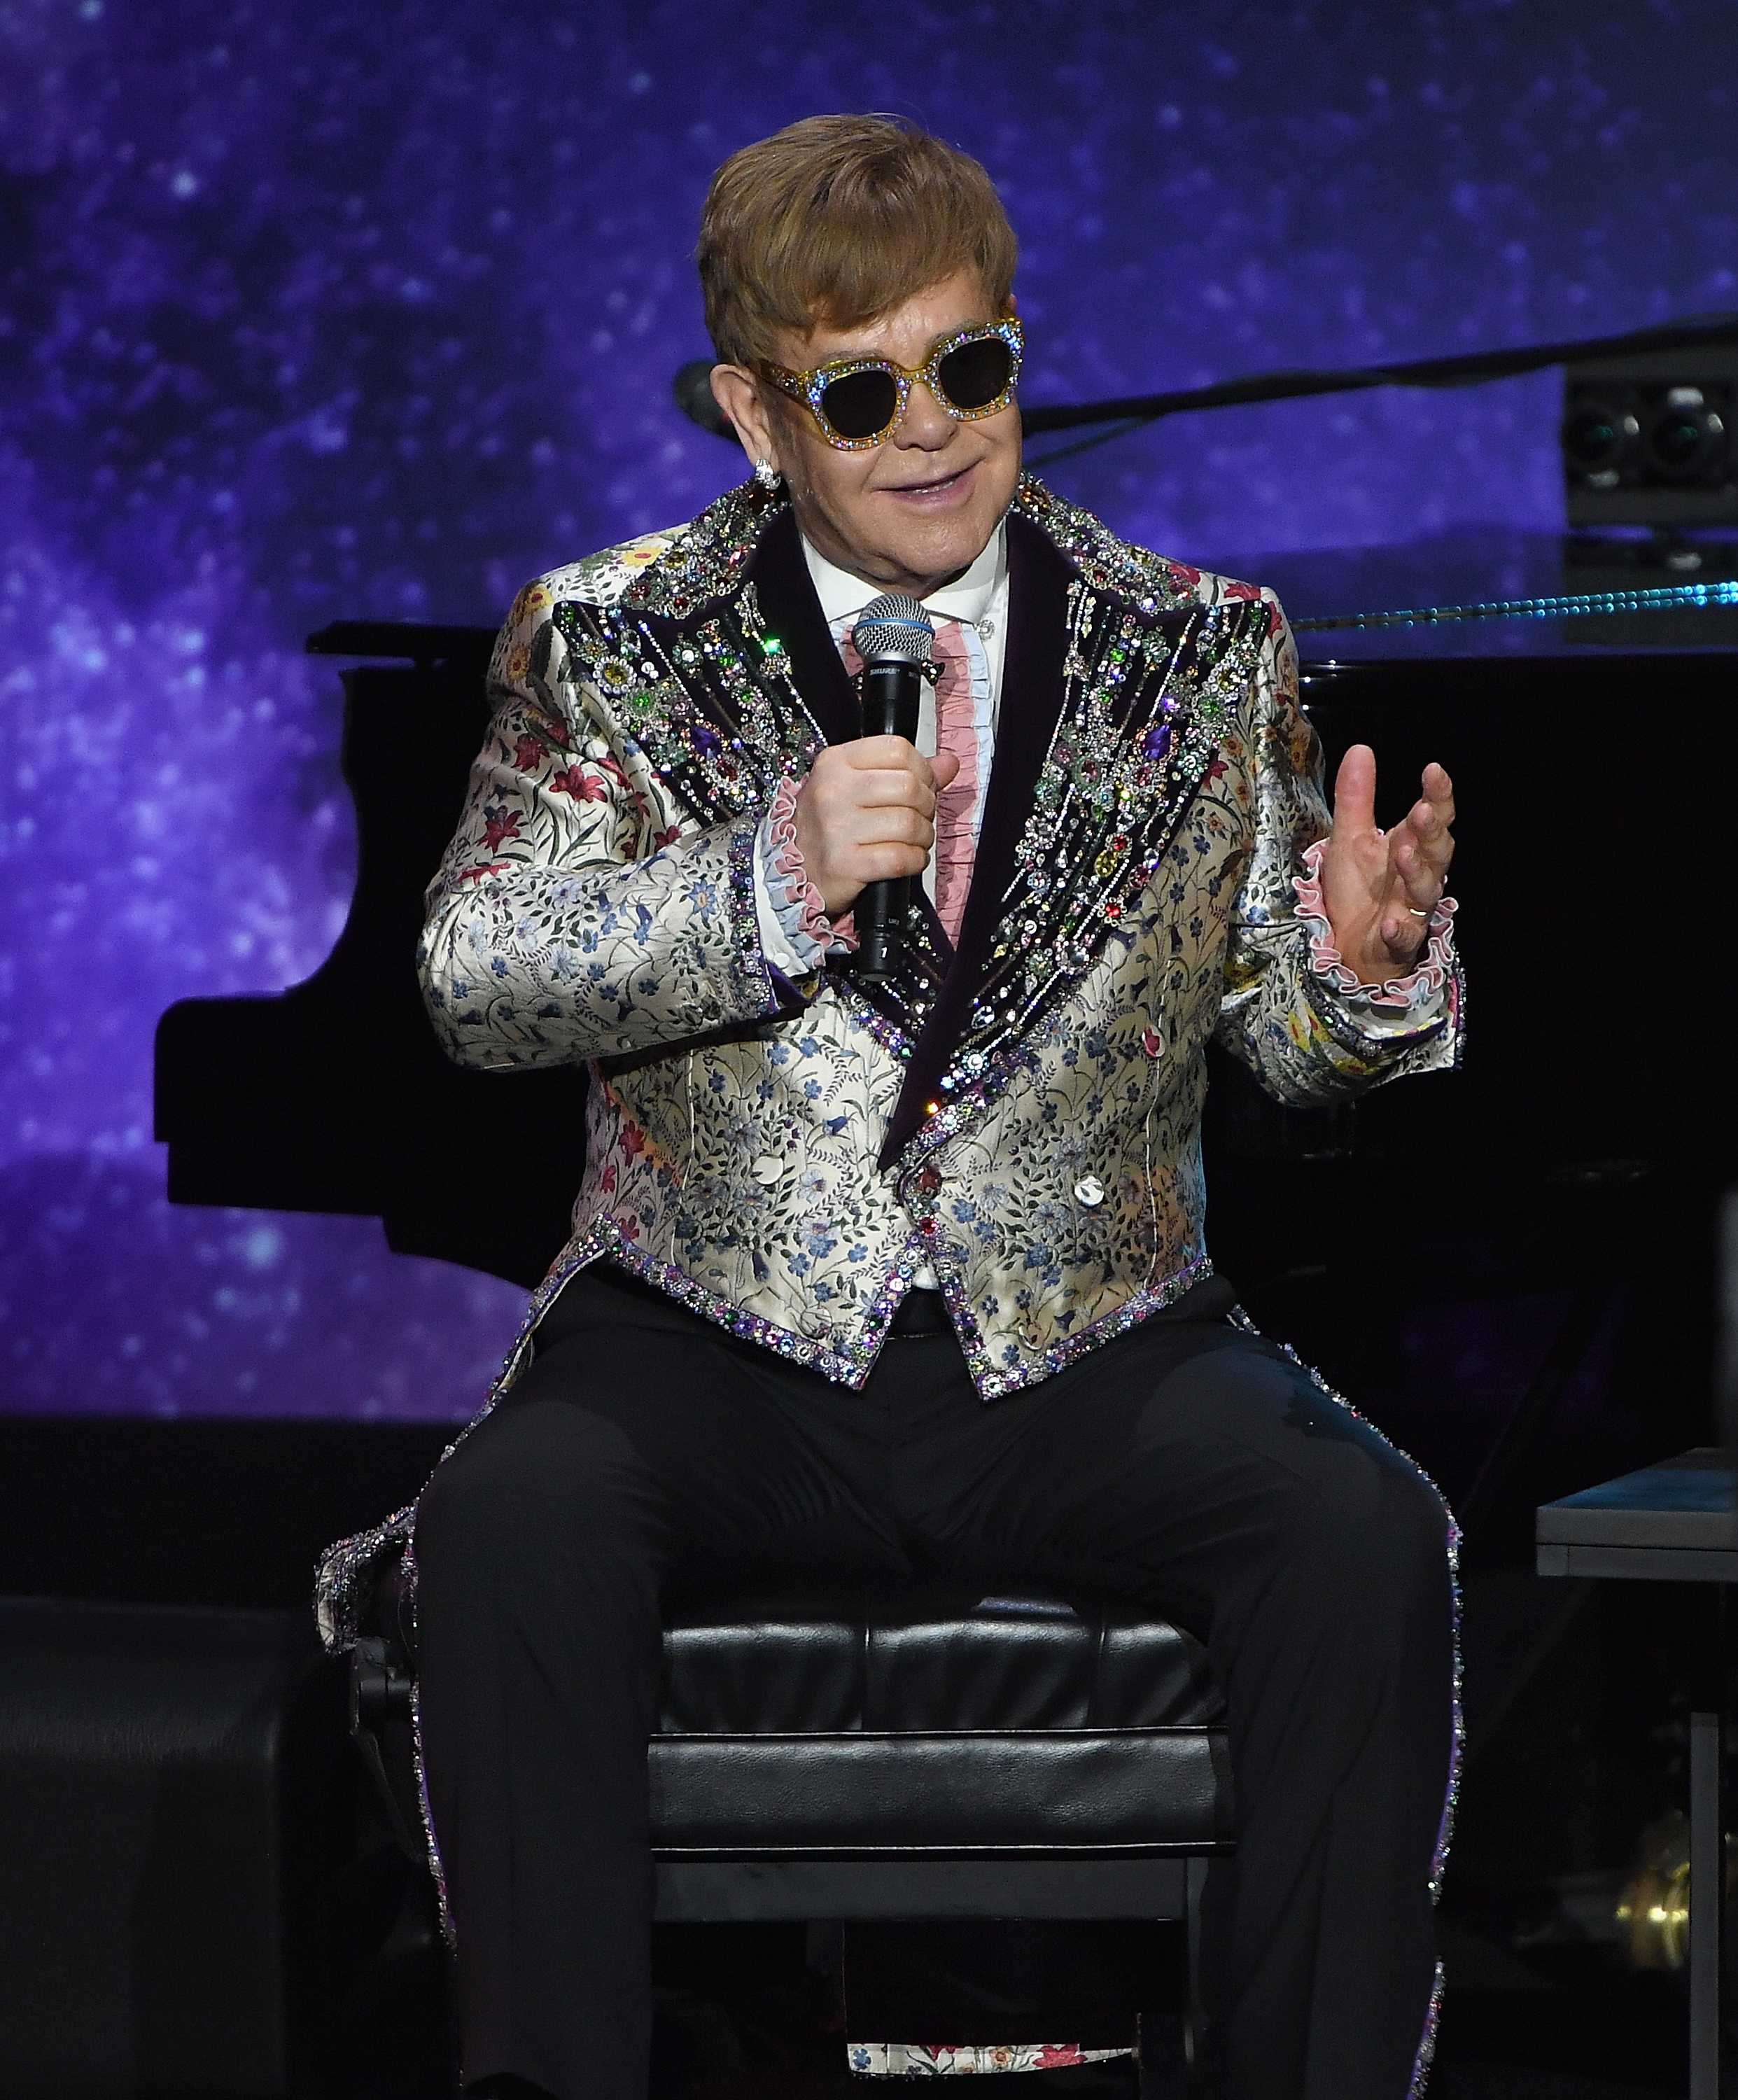 Embroidery, sequins and ruffles?! Elton John has never met an accent he didn't like.